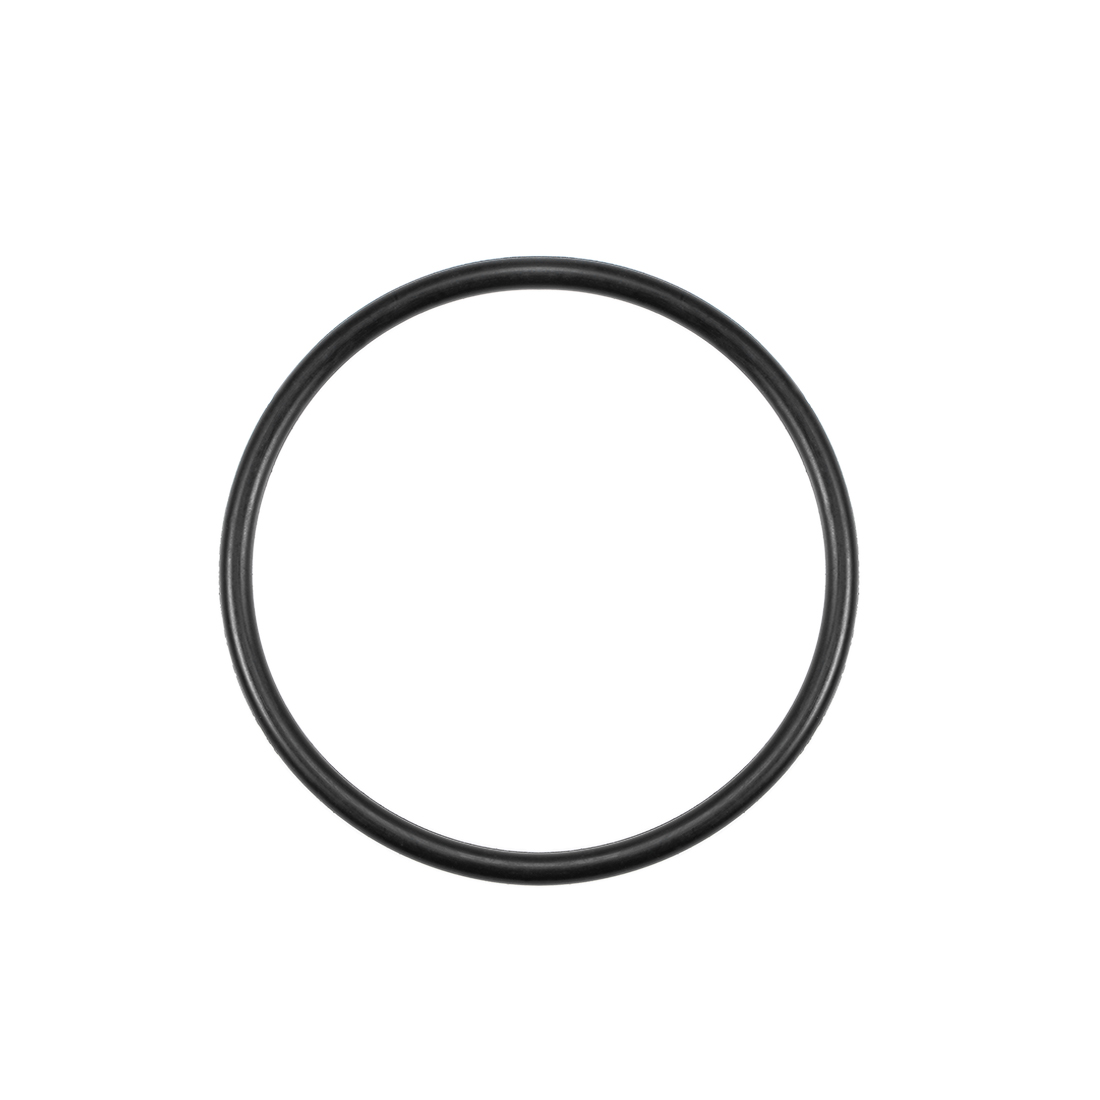 O-Rings Nitrile Rubber 24mm x 32mm x 4mm Round Seal Gasket 5Pcs